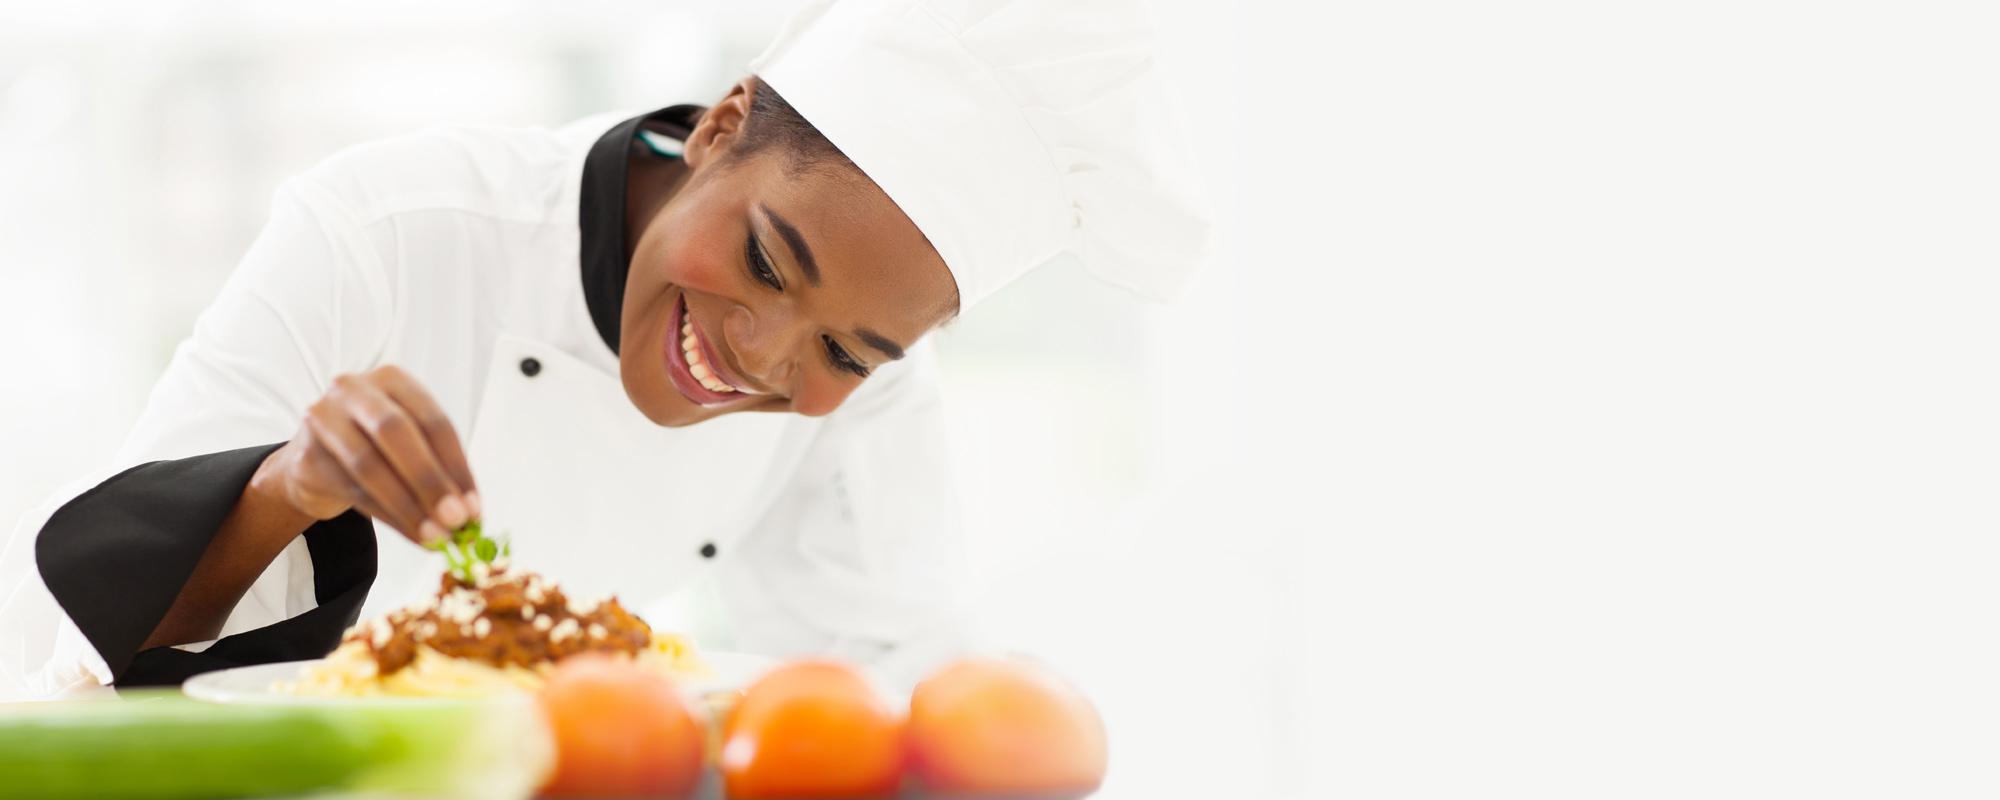 Gourmet Services Chef